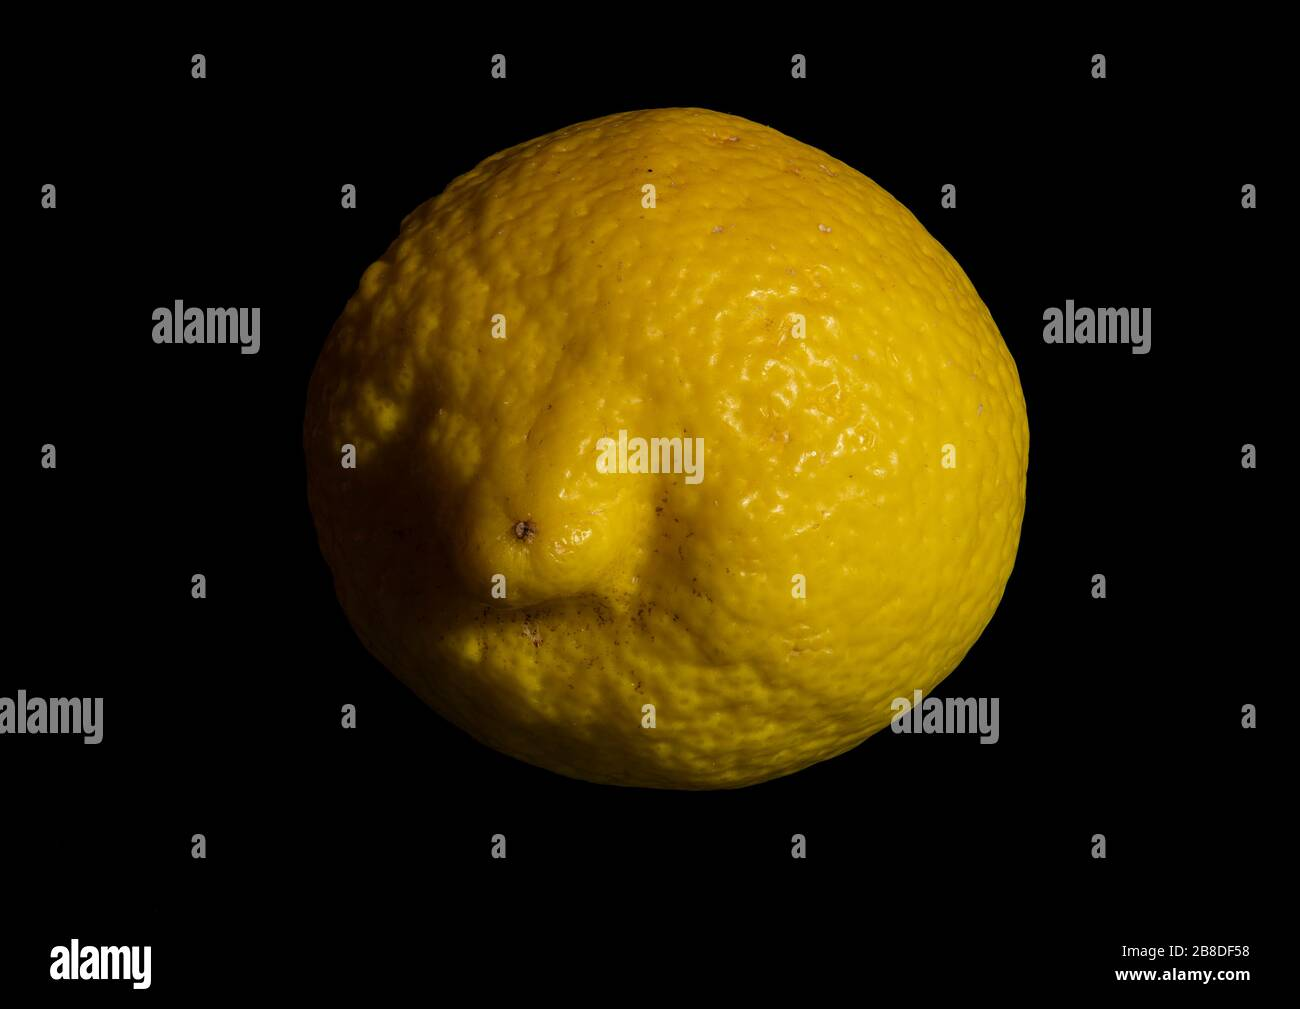 close-up-image-of-an-organic-lemon-using